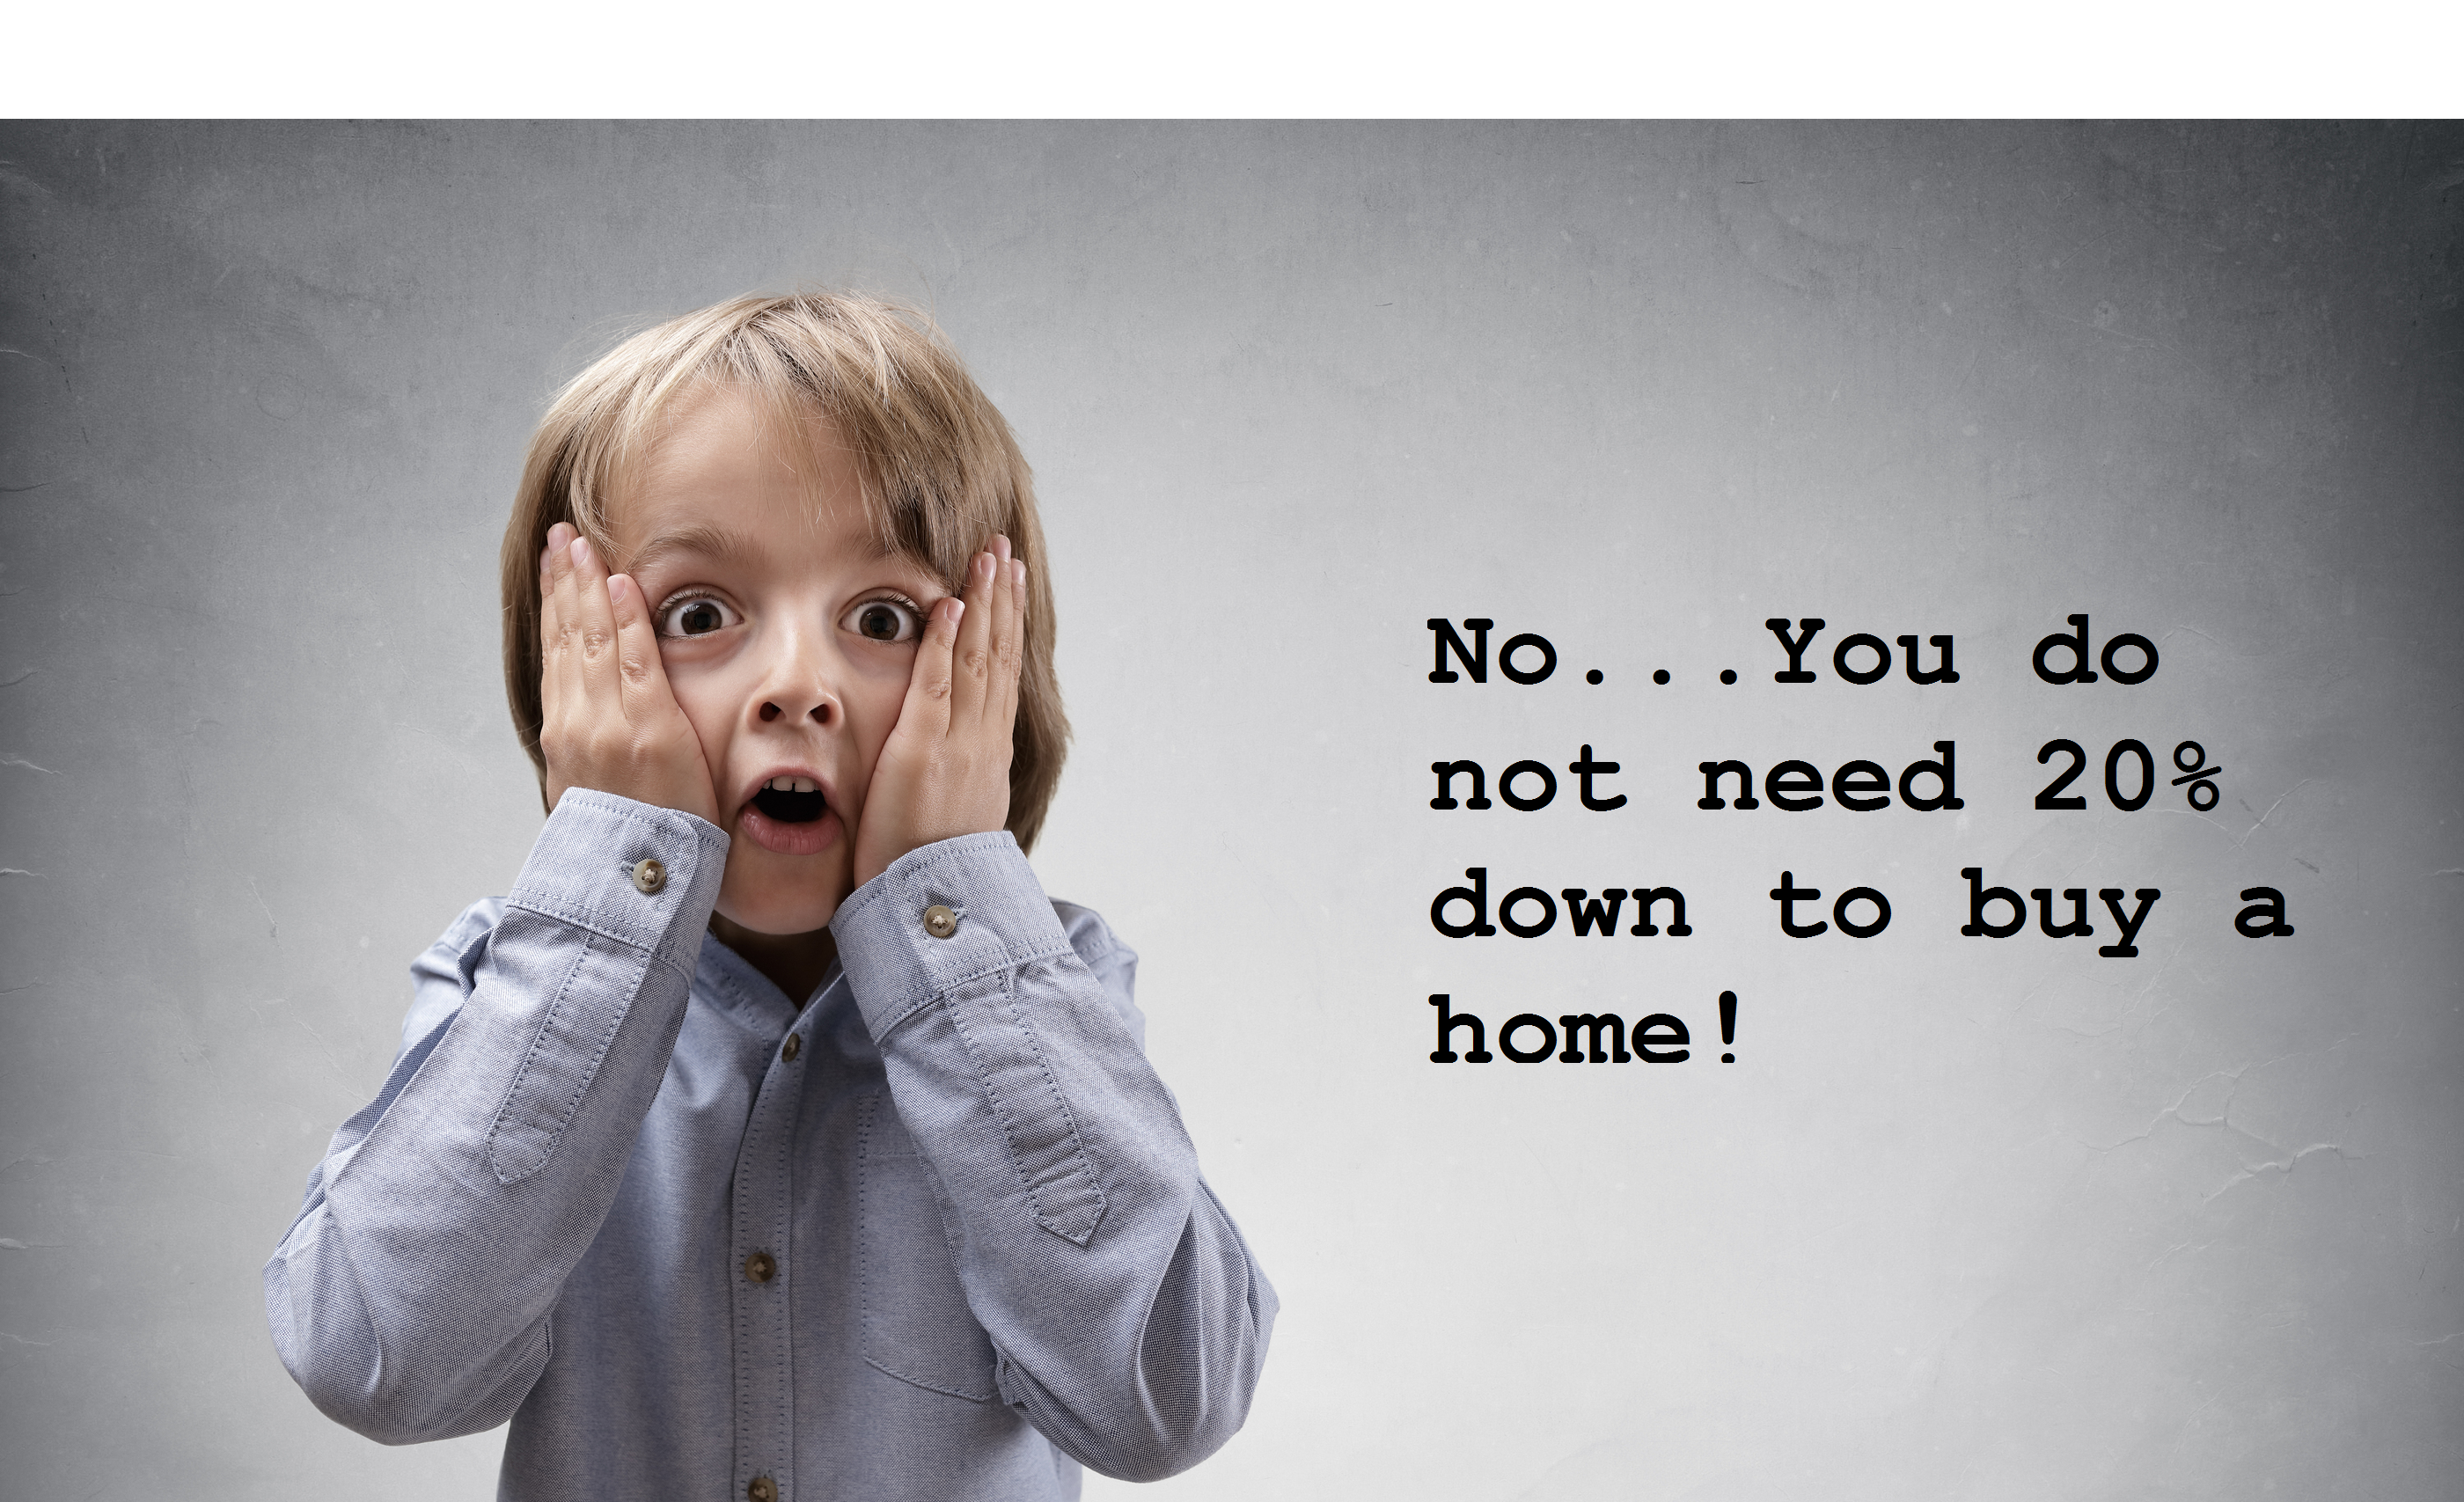 do you need 20% down in order to buy a home